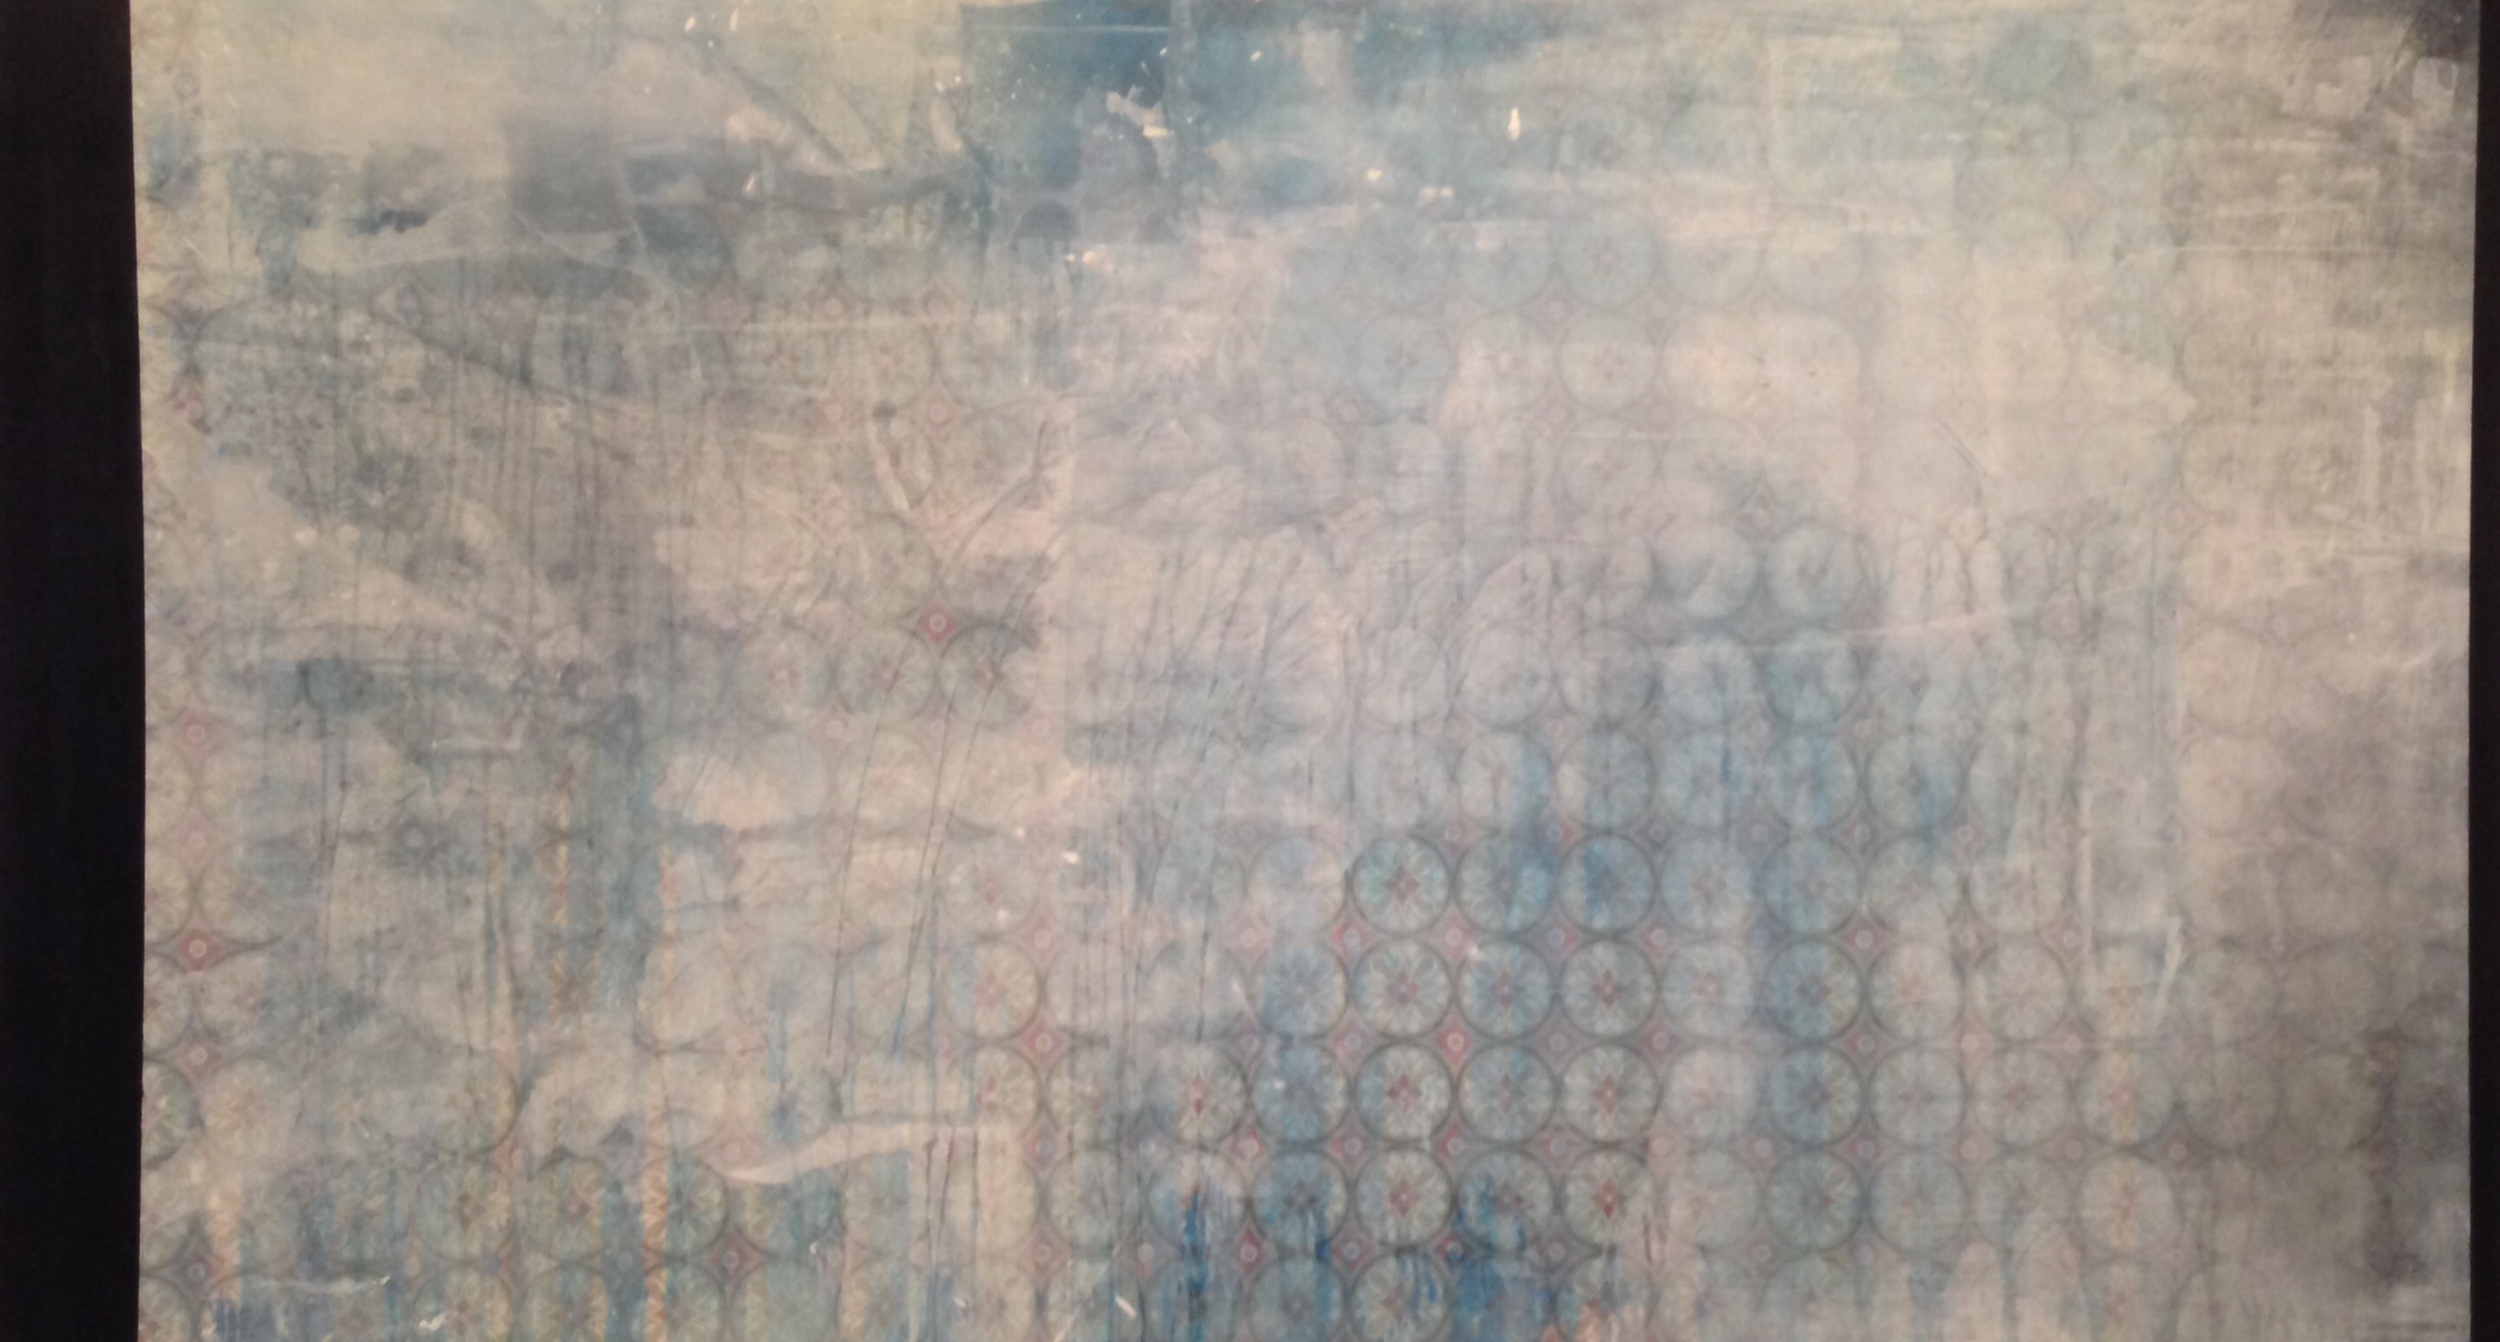 """1846, oil and acrylic on printed fabric, 2014, 72"""" x 40"""", $6,000"""